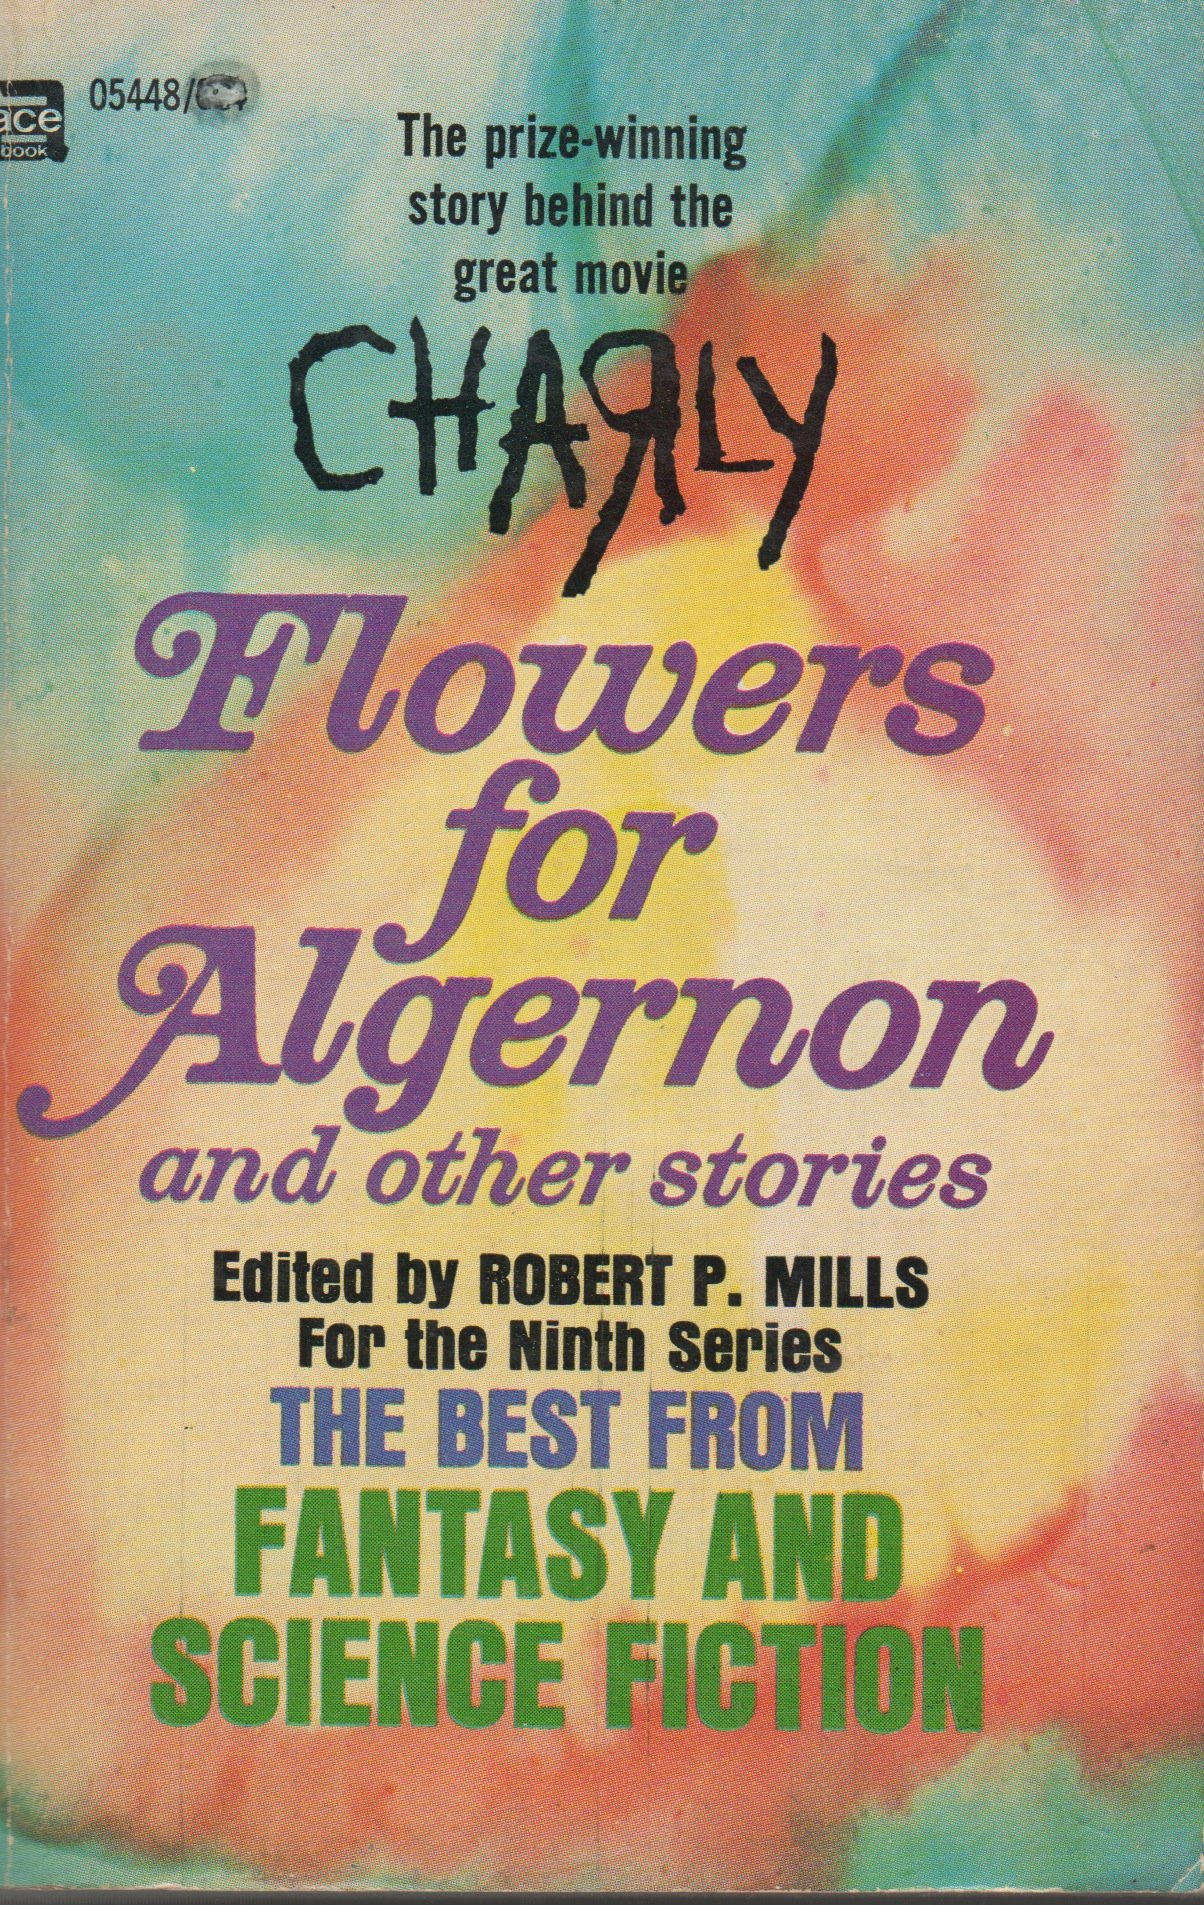 flowers for algernon and other stories the best from fantasy and flowers for algernon and other stories the best from fantasy and science fiction ninth series robert p mills daniel keyes com books